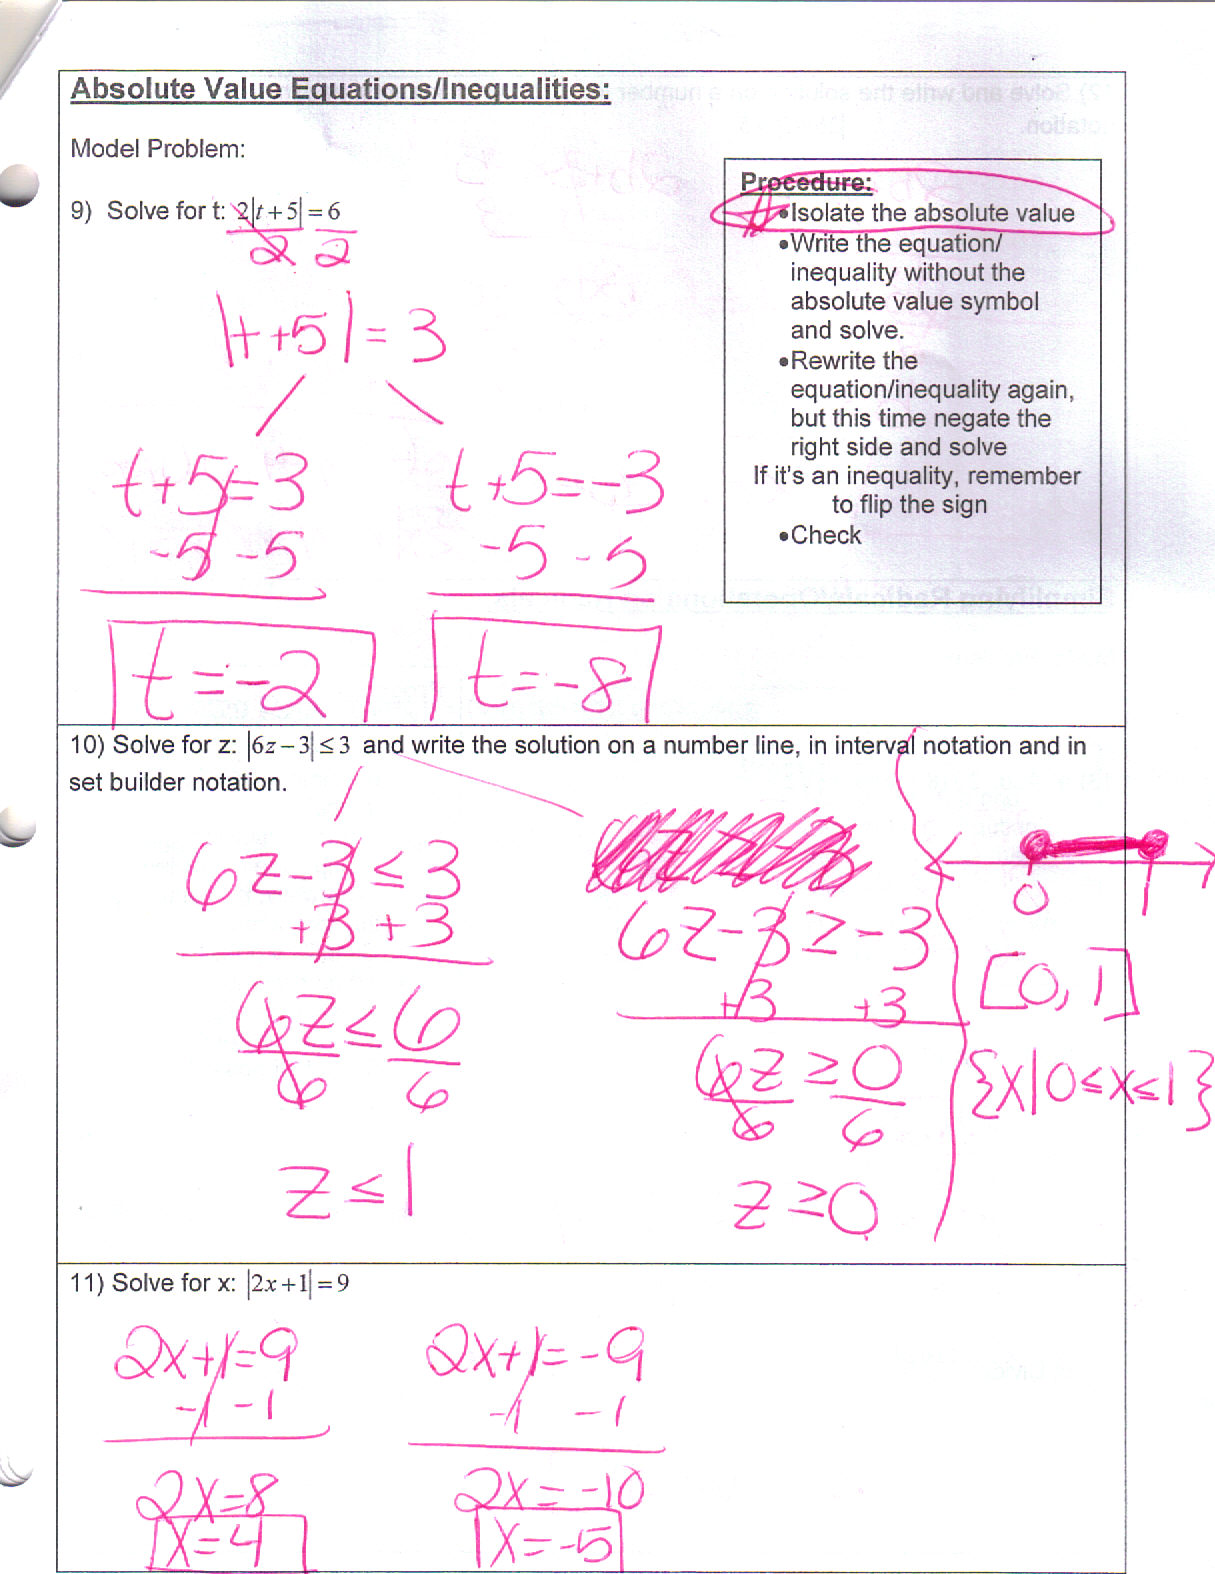 Algebra 2 trig regents review test 1 answers